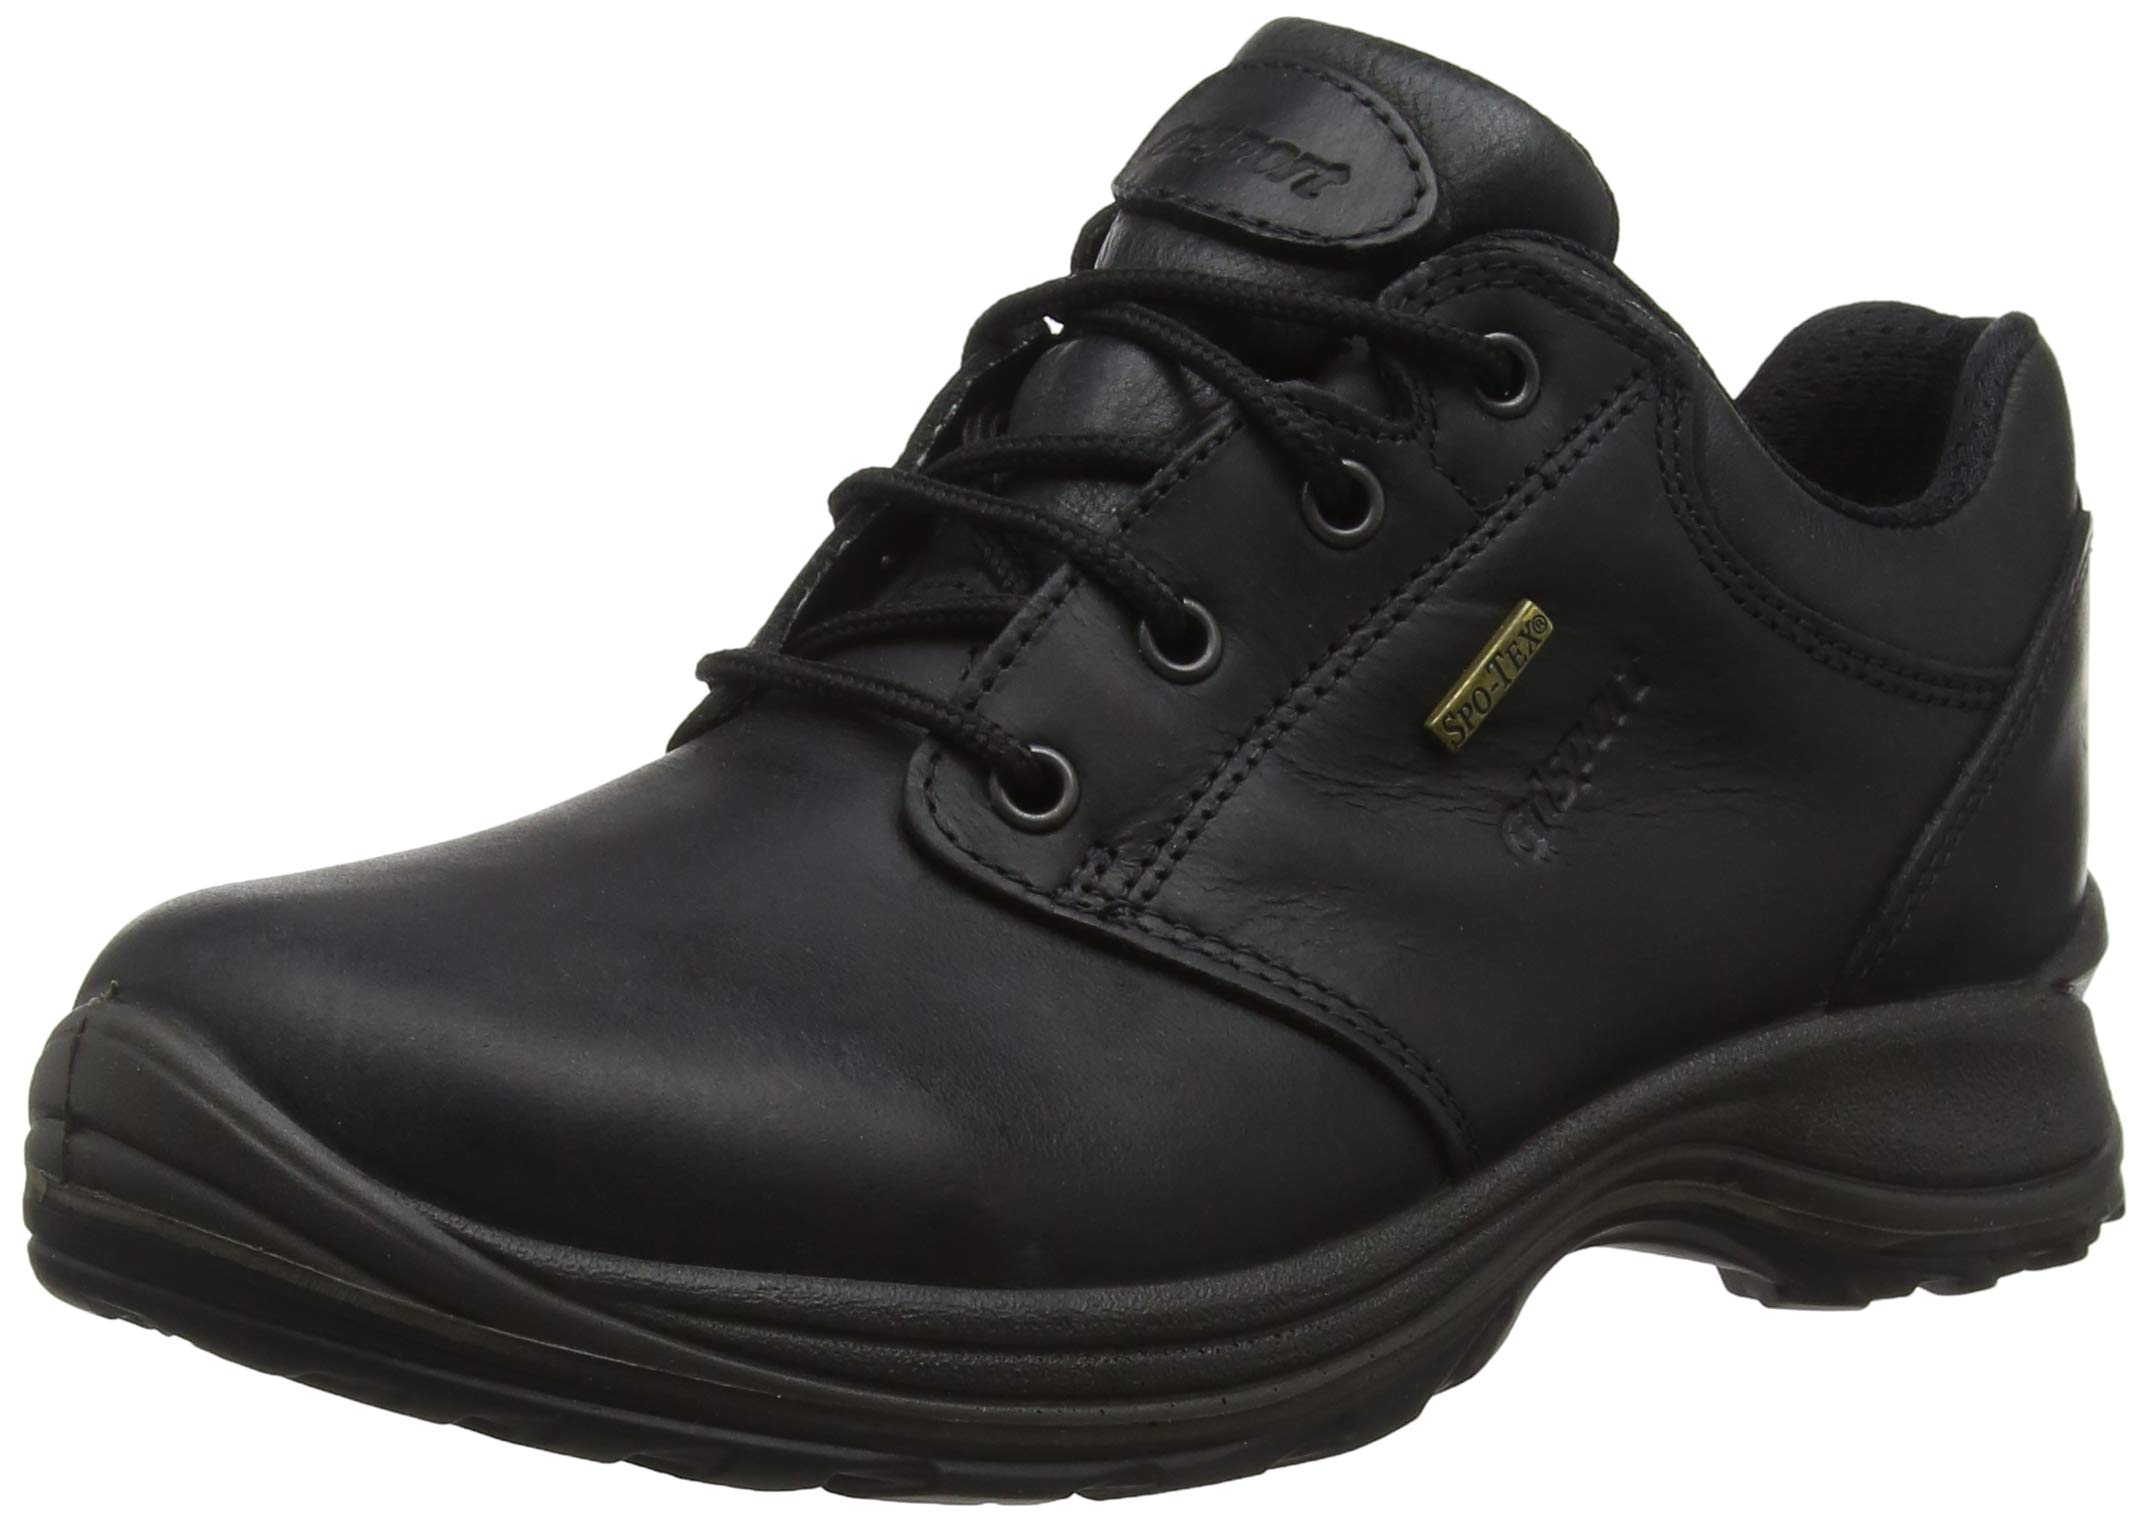 Grisport Unisex Adults Exmoor Low Rise Hiking Boots 1